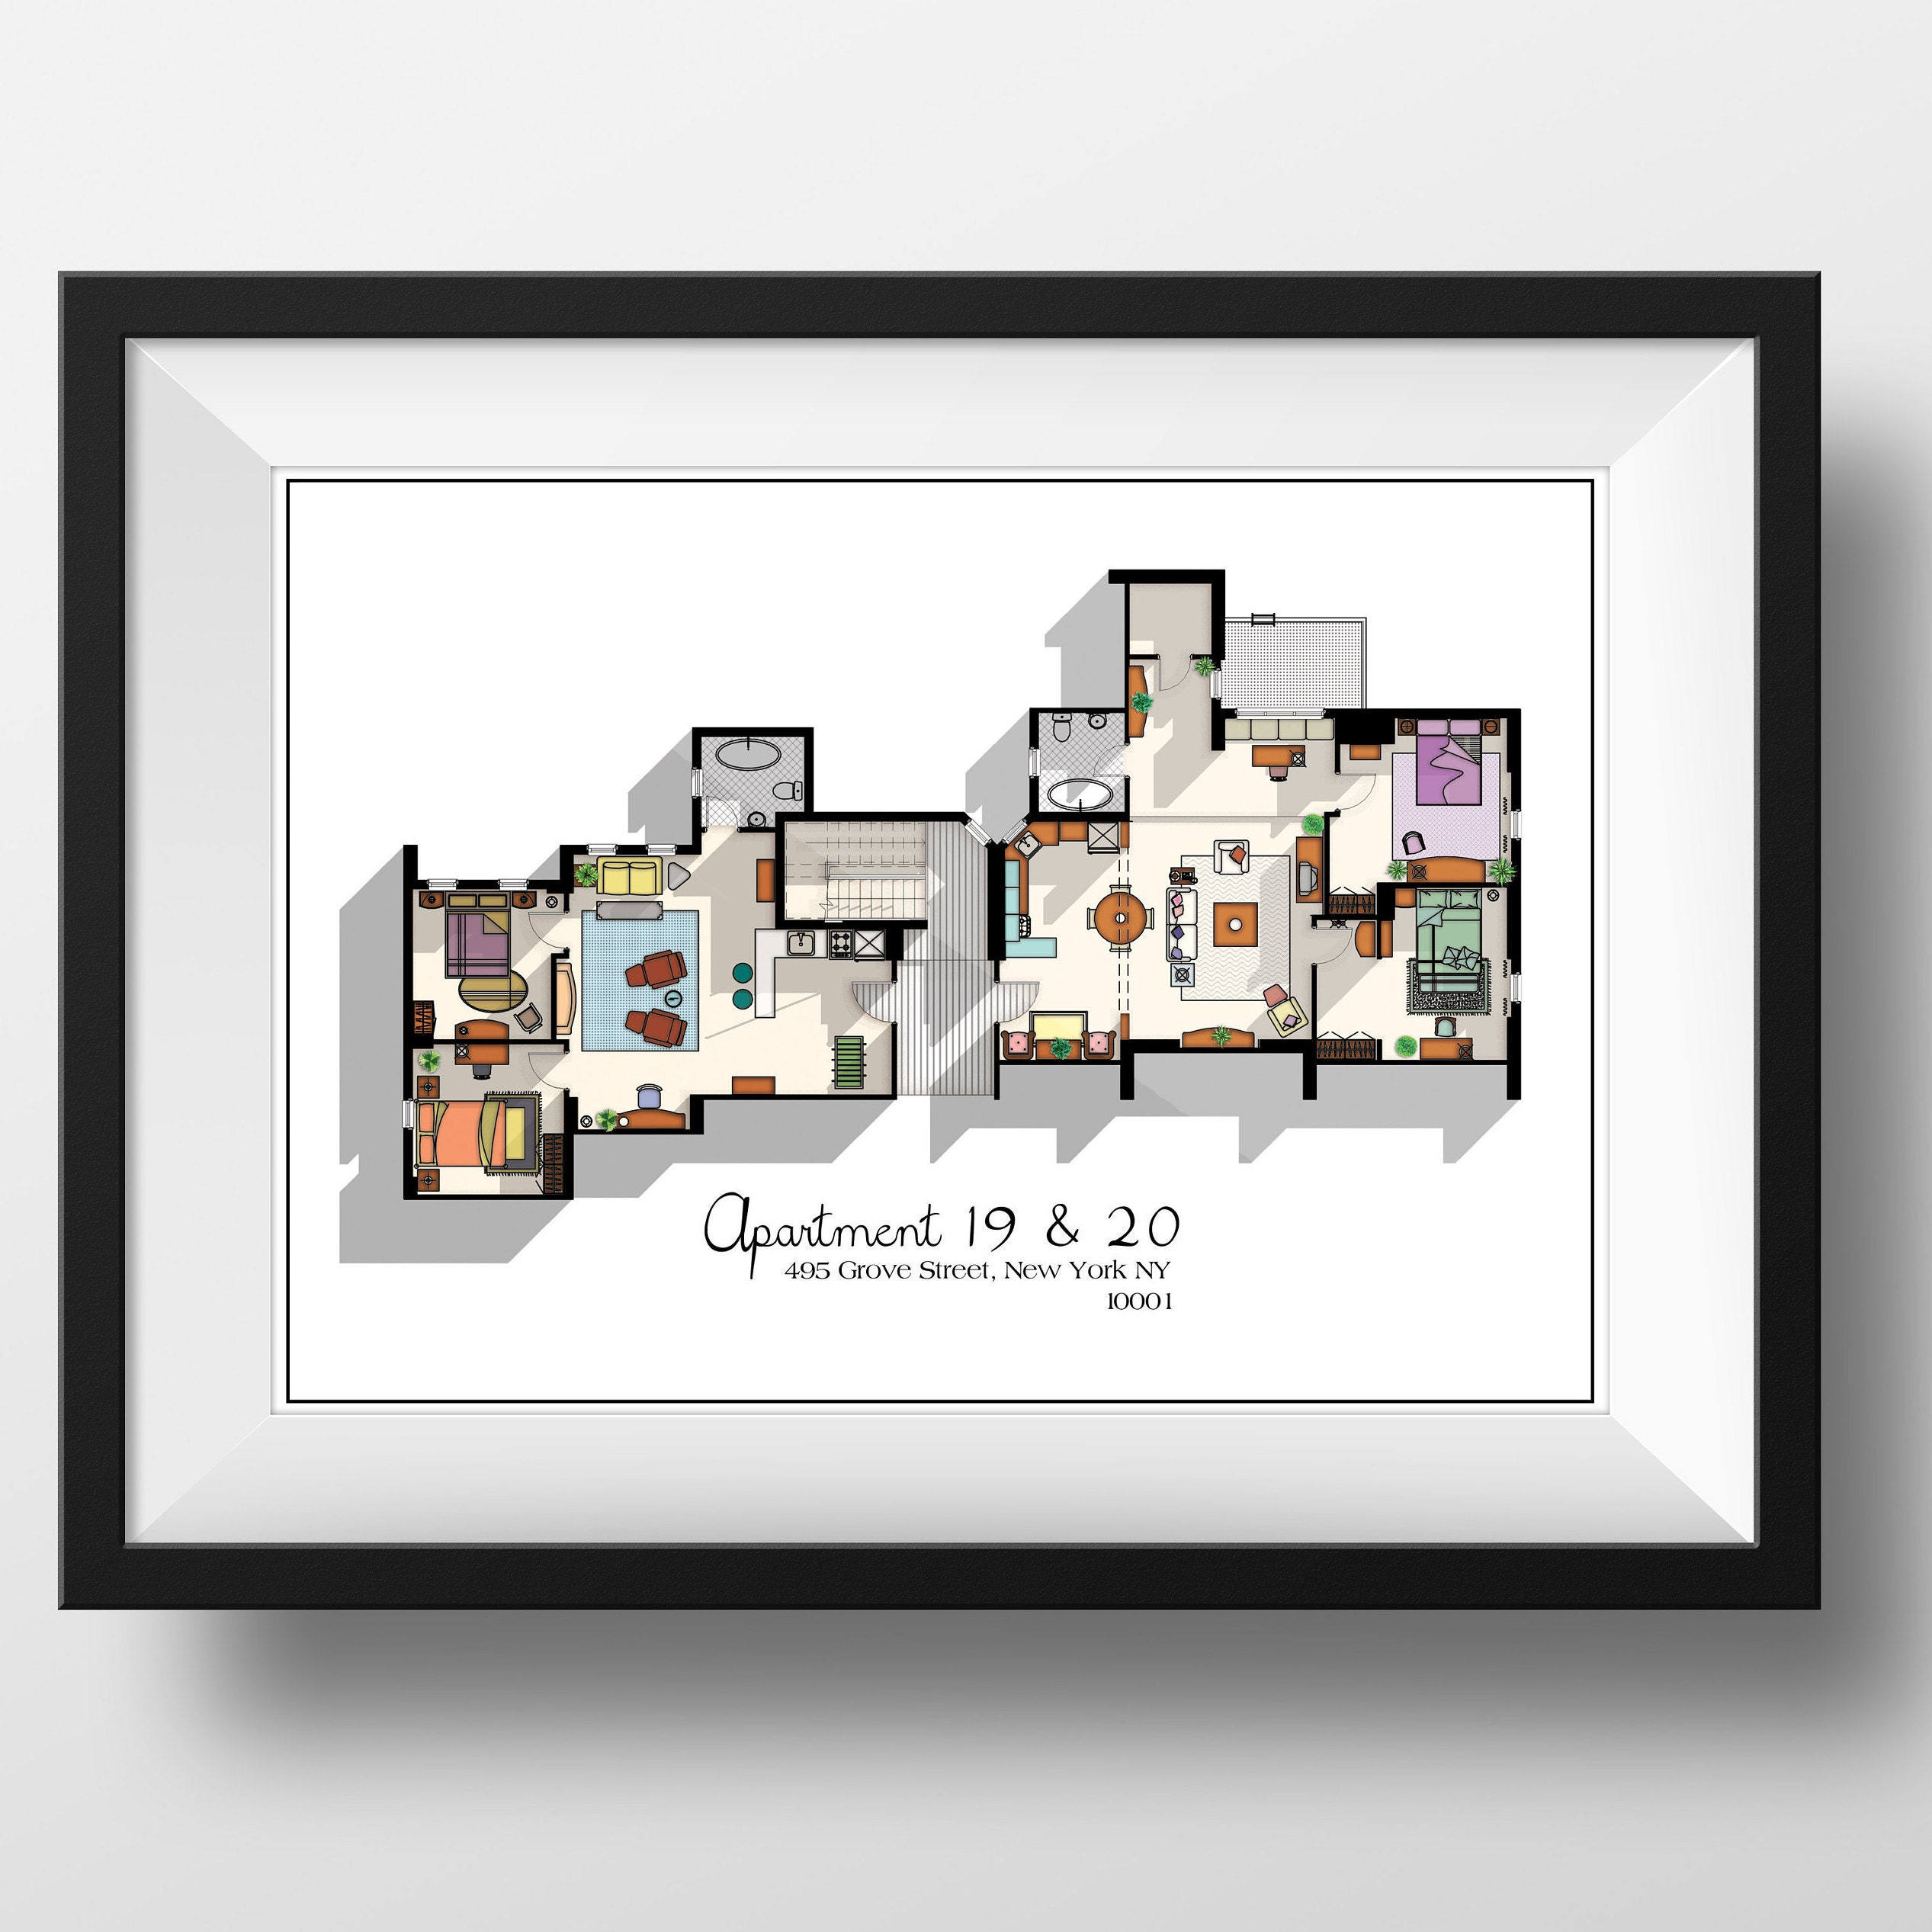 Room Store Chandler: Central Perk Cafe Floor Plan Friends TV Show Layout Central